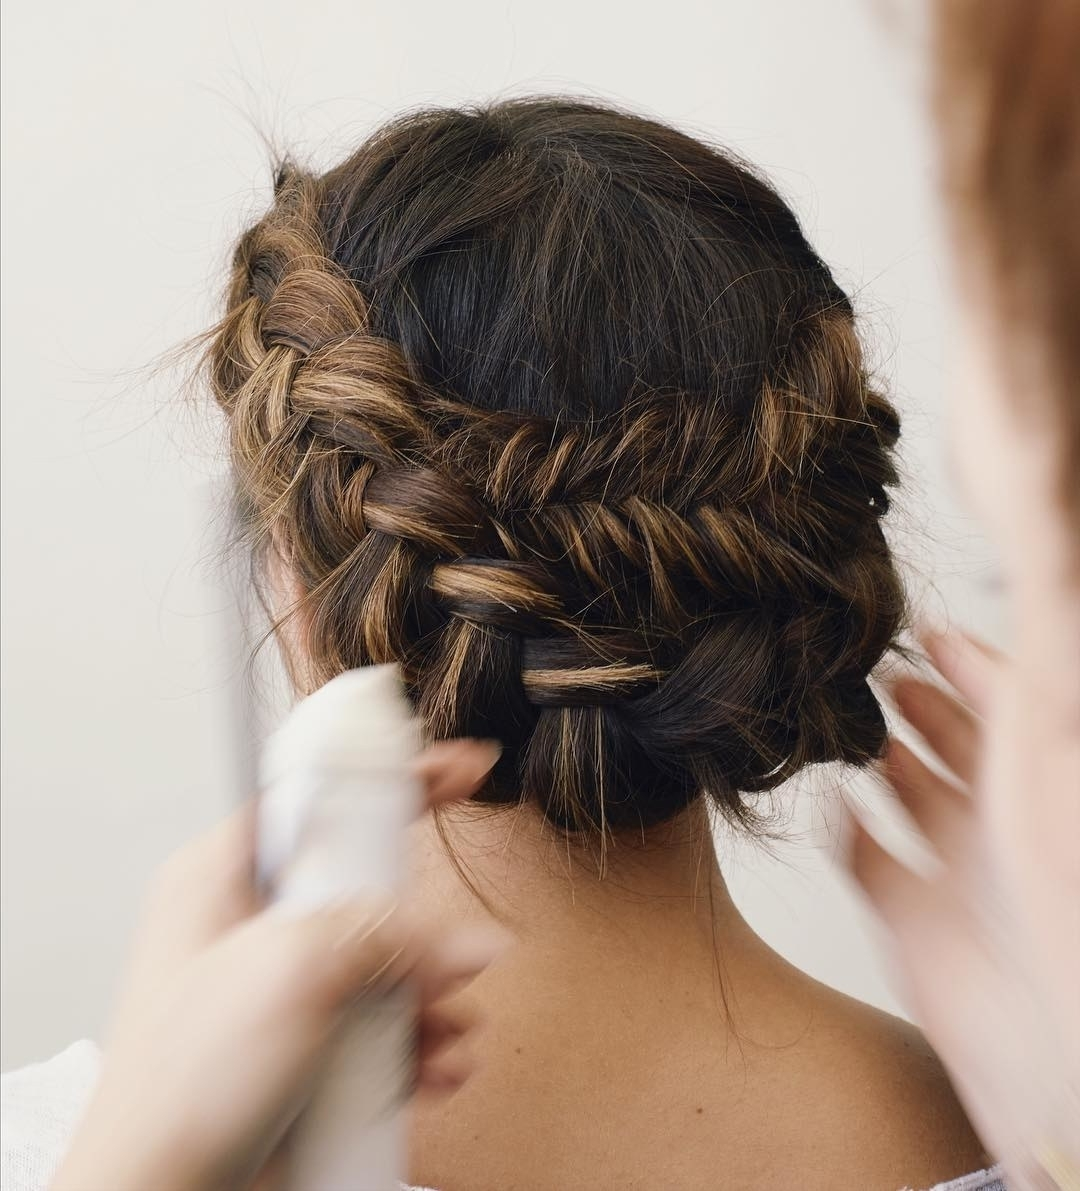 Brides Intended For Newest Braided Boho Locks Pony Hairstyles (View 6 of 20)